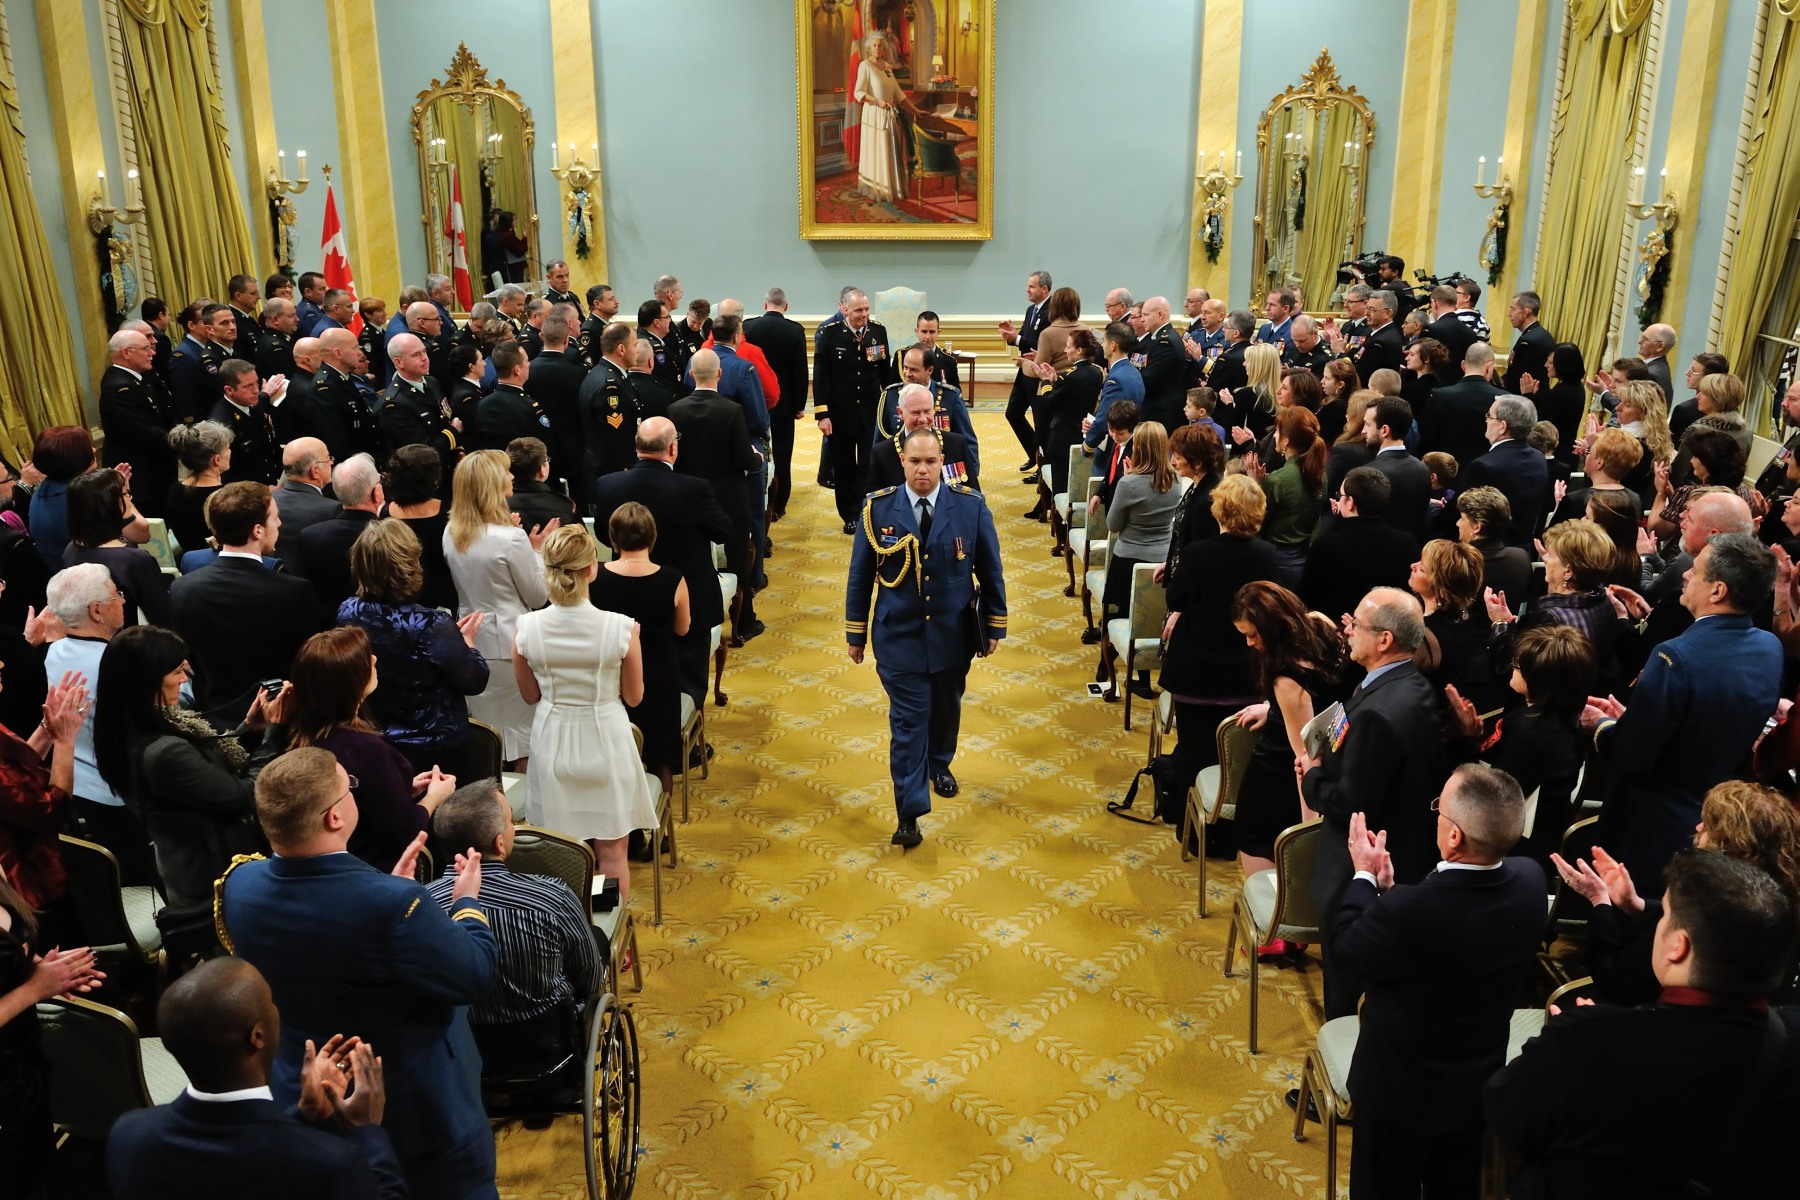 The Order of Military Merit was created in 1972, to recognize meritorious service and devotion to duty by members of the Canadian Forces. The Order has three levels of membership: Commander (C.M.M.), Officer (O.M.M.) and Member (M.M.M.).